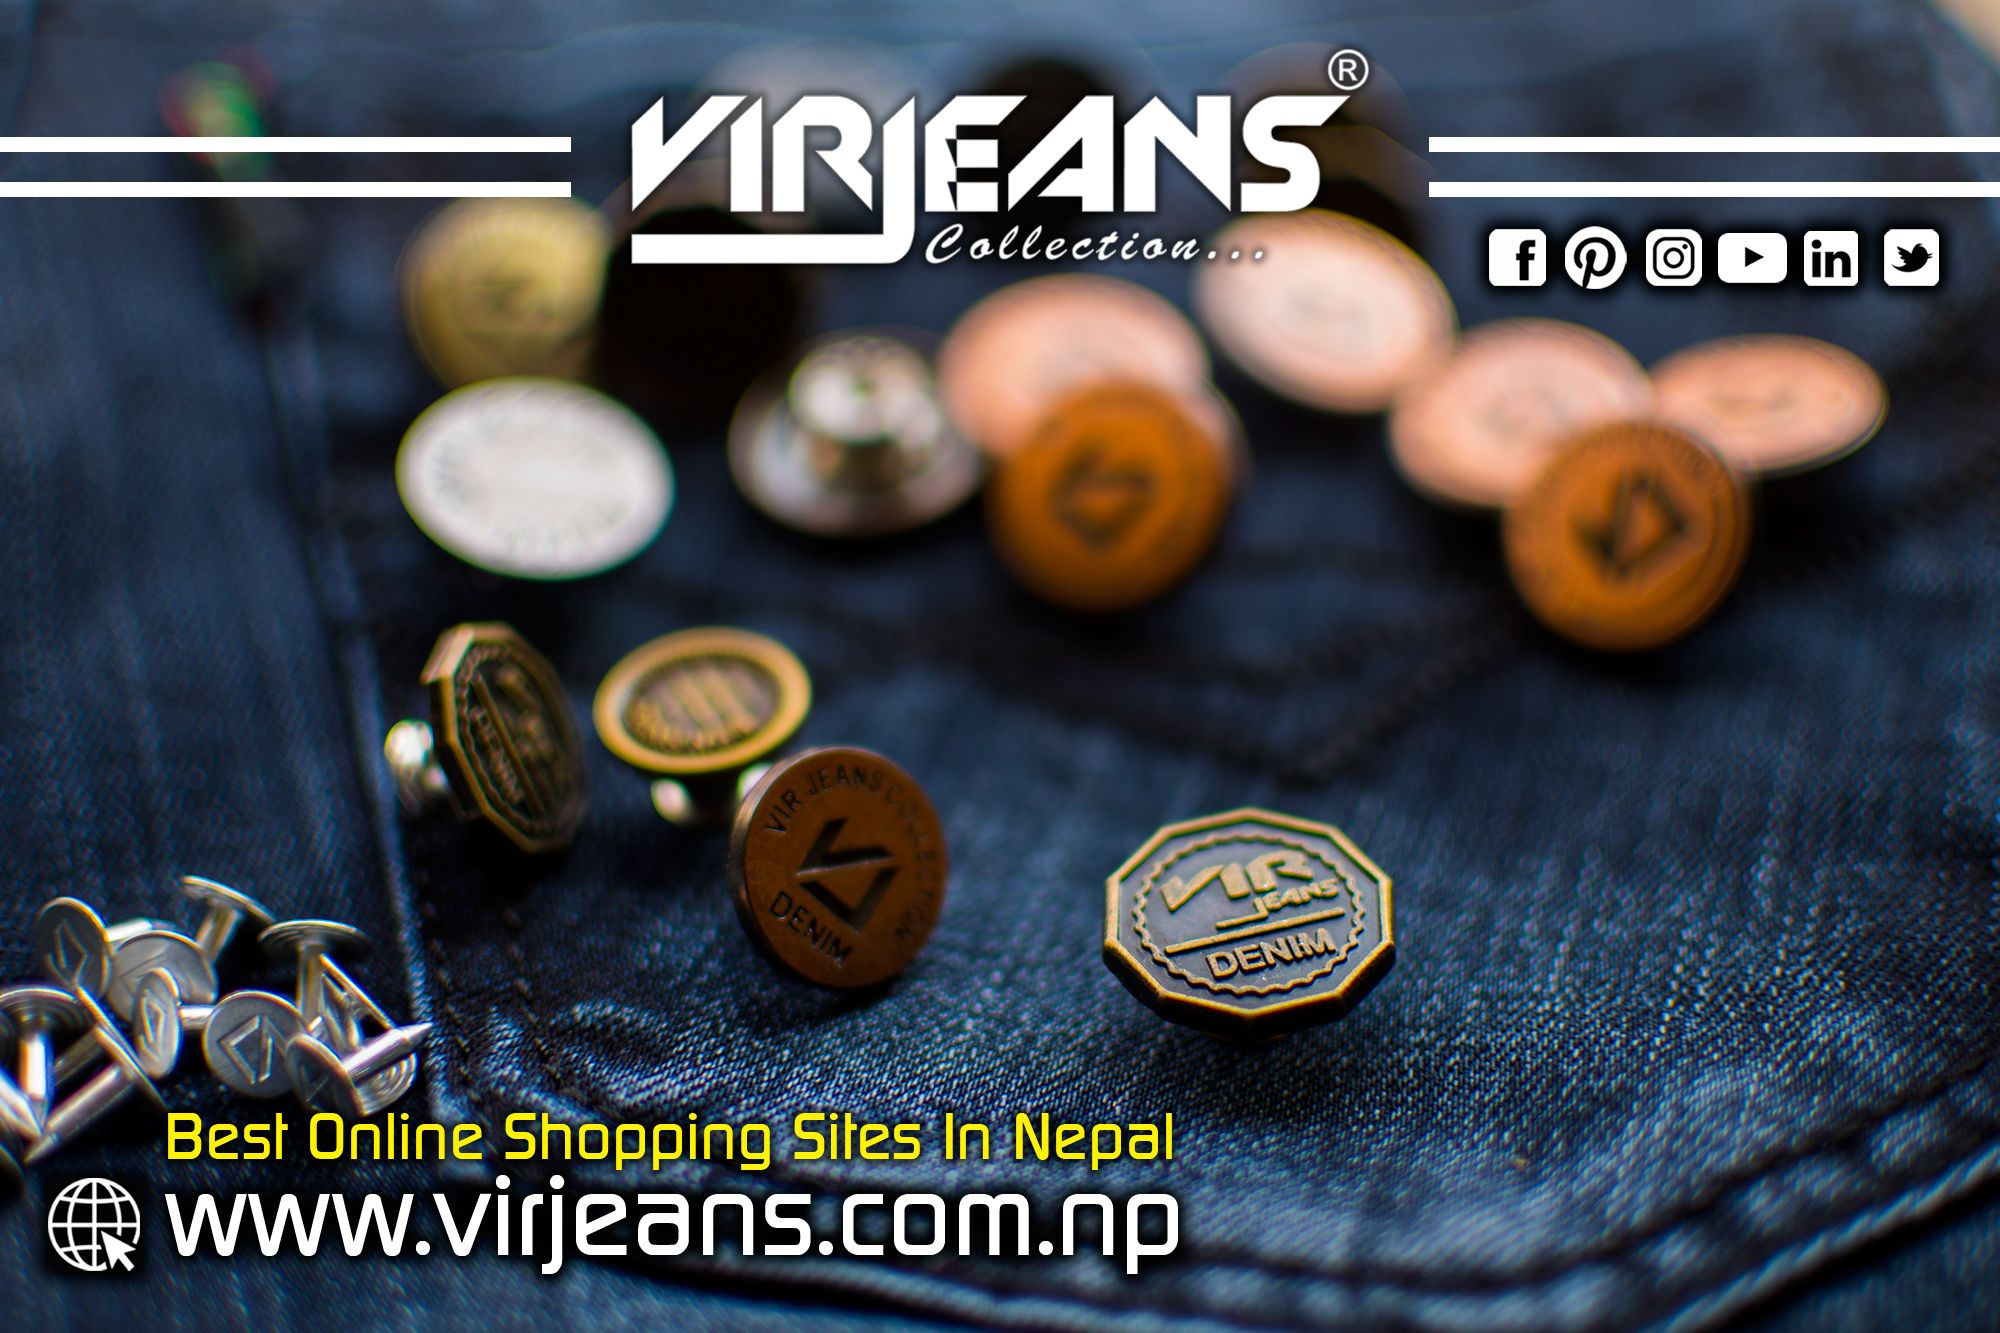 Virjeans Clothing Brand Of Nepal Virjeans Magazine Denim In Nepal Top Designer Jeans Brands L Popular Clothing Brands Nepal Clothing Top Clothing Brands